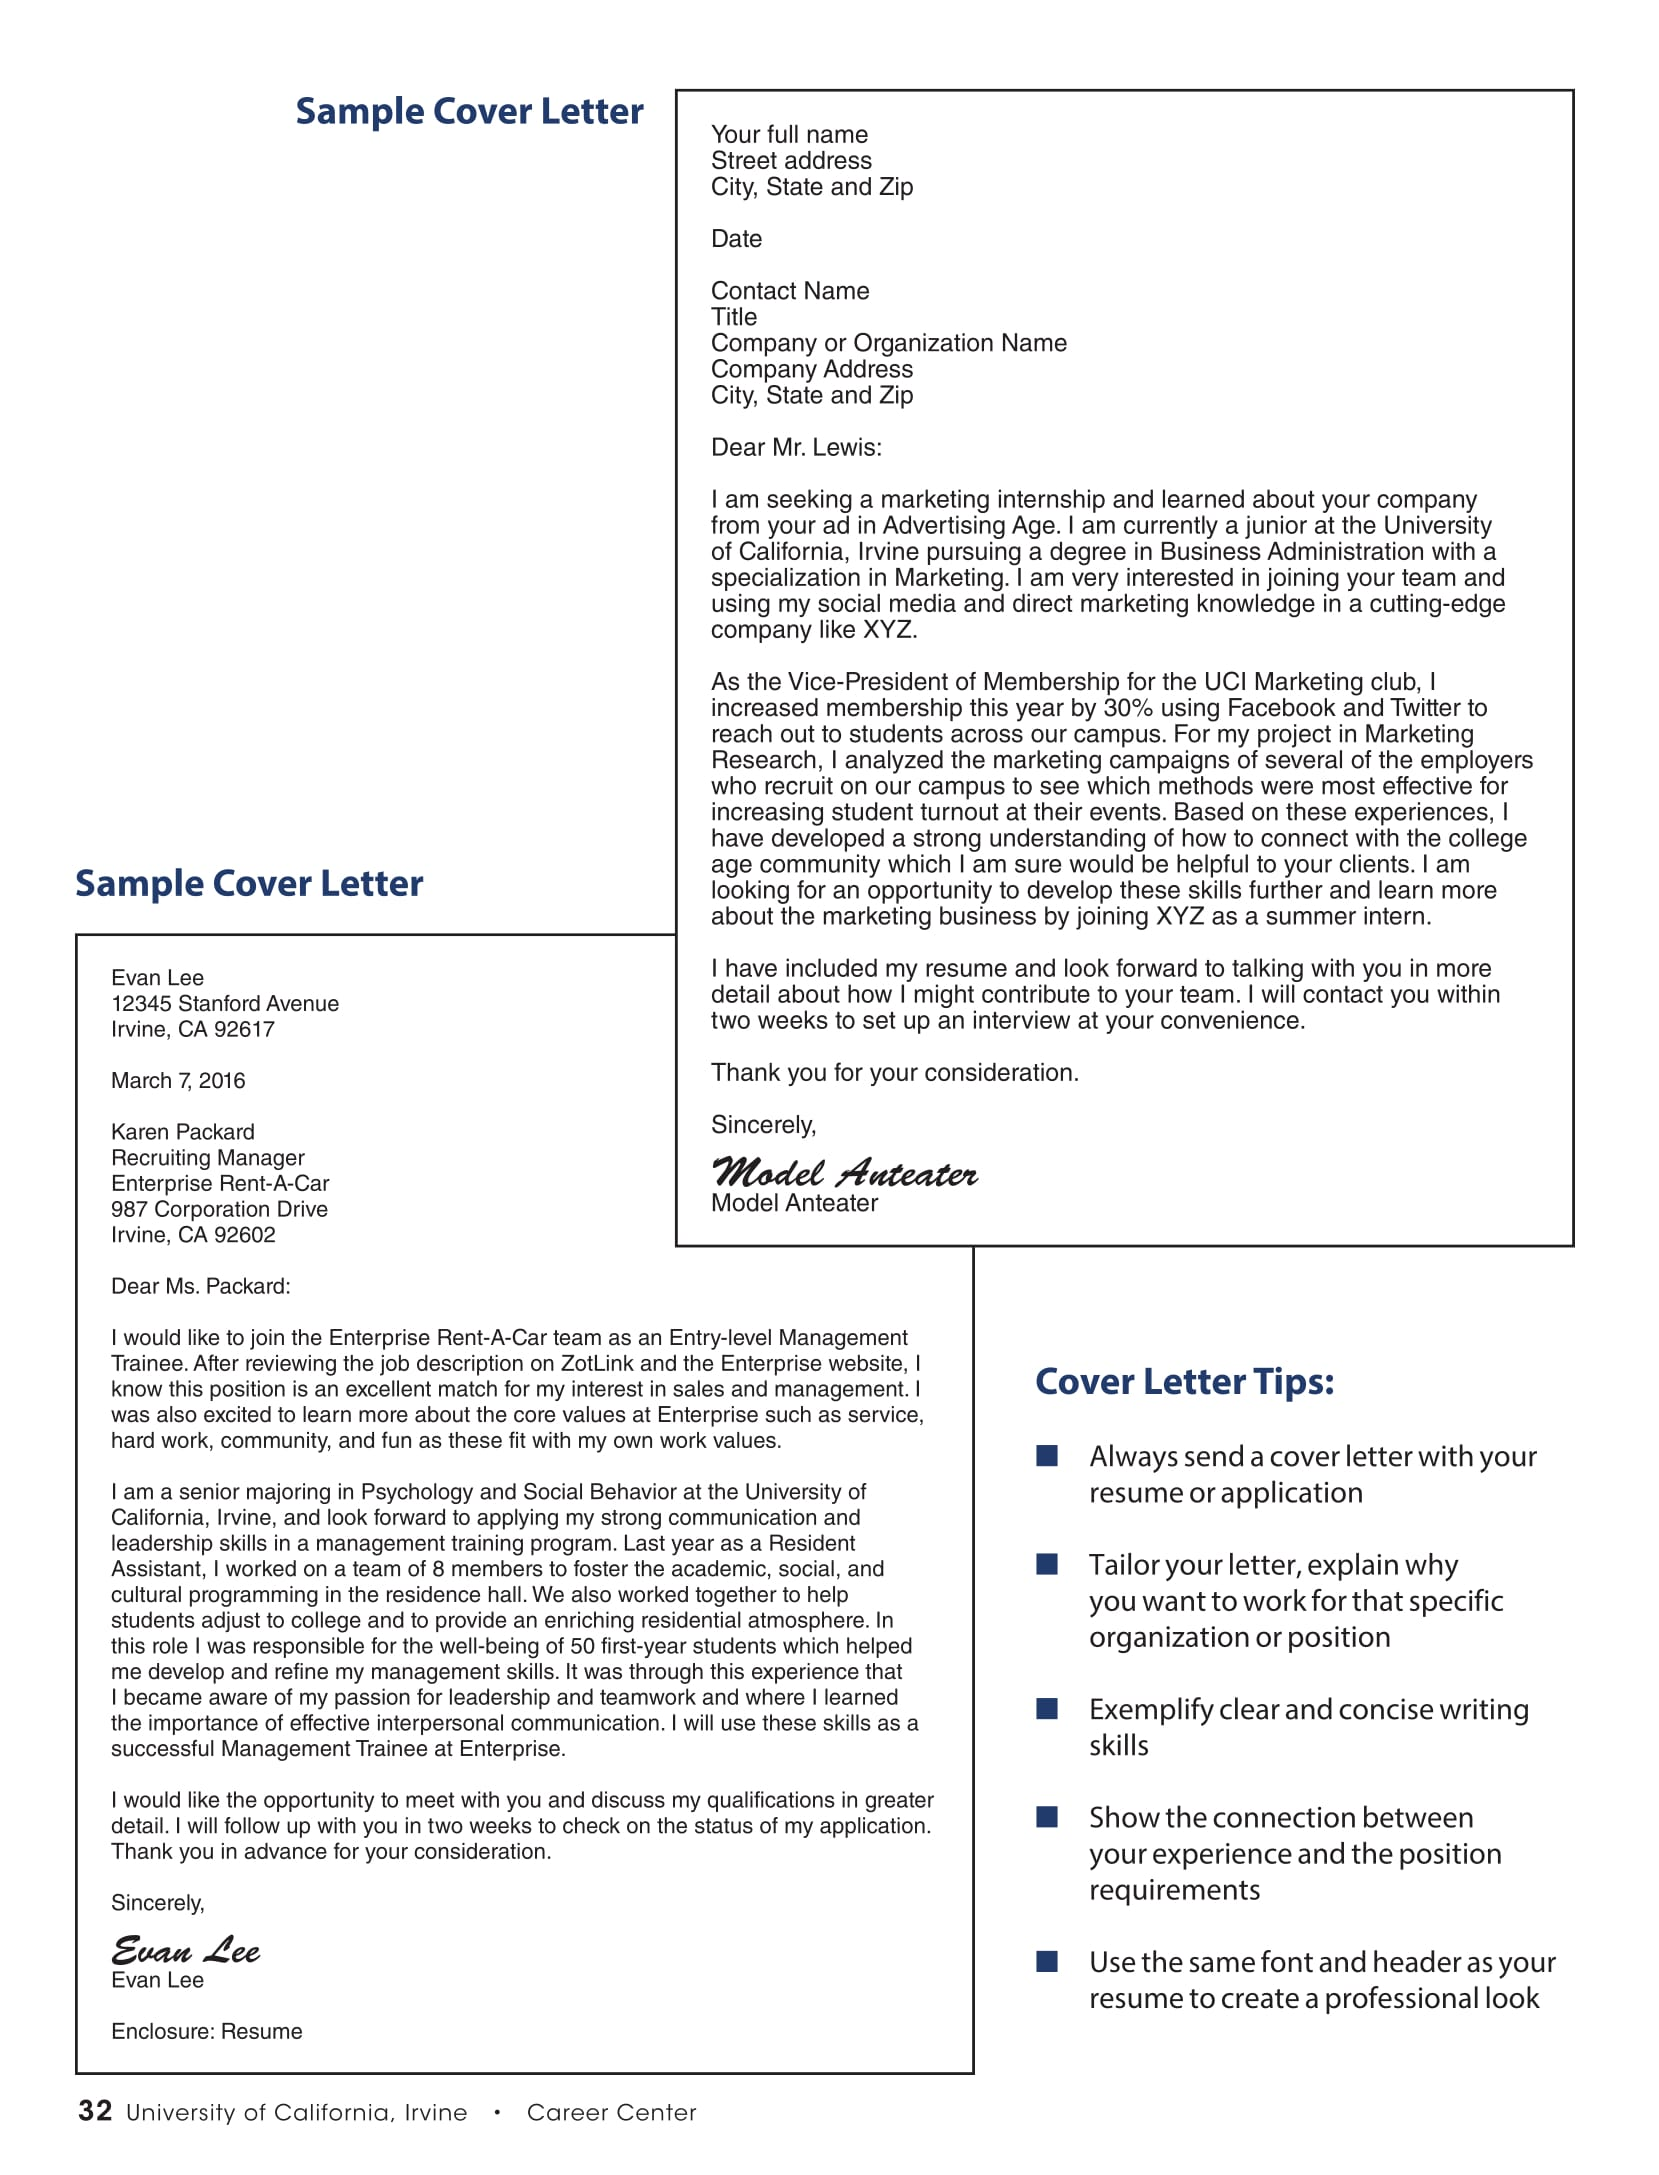 Cover Letter Sample for a Resume